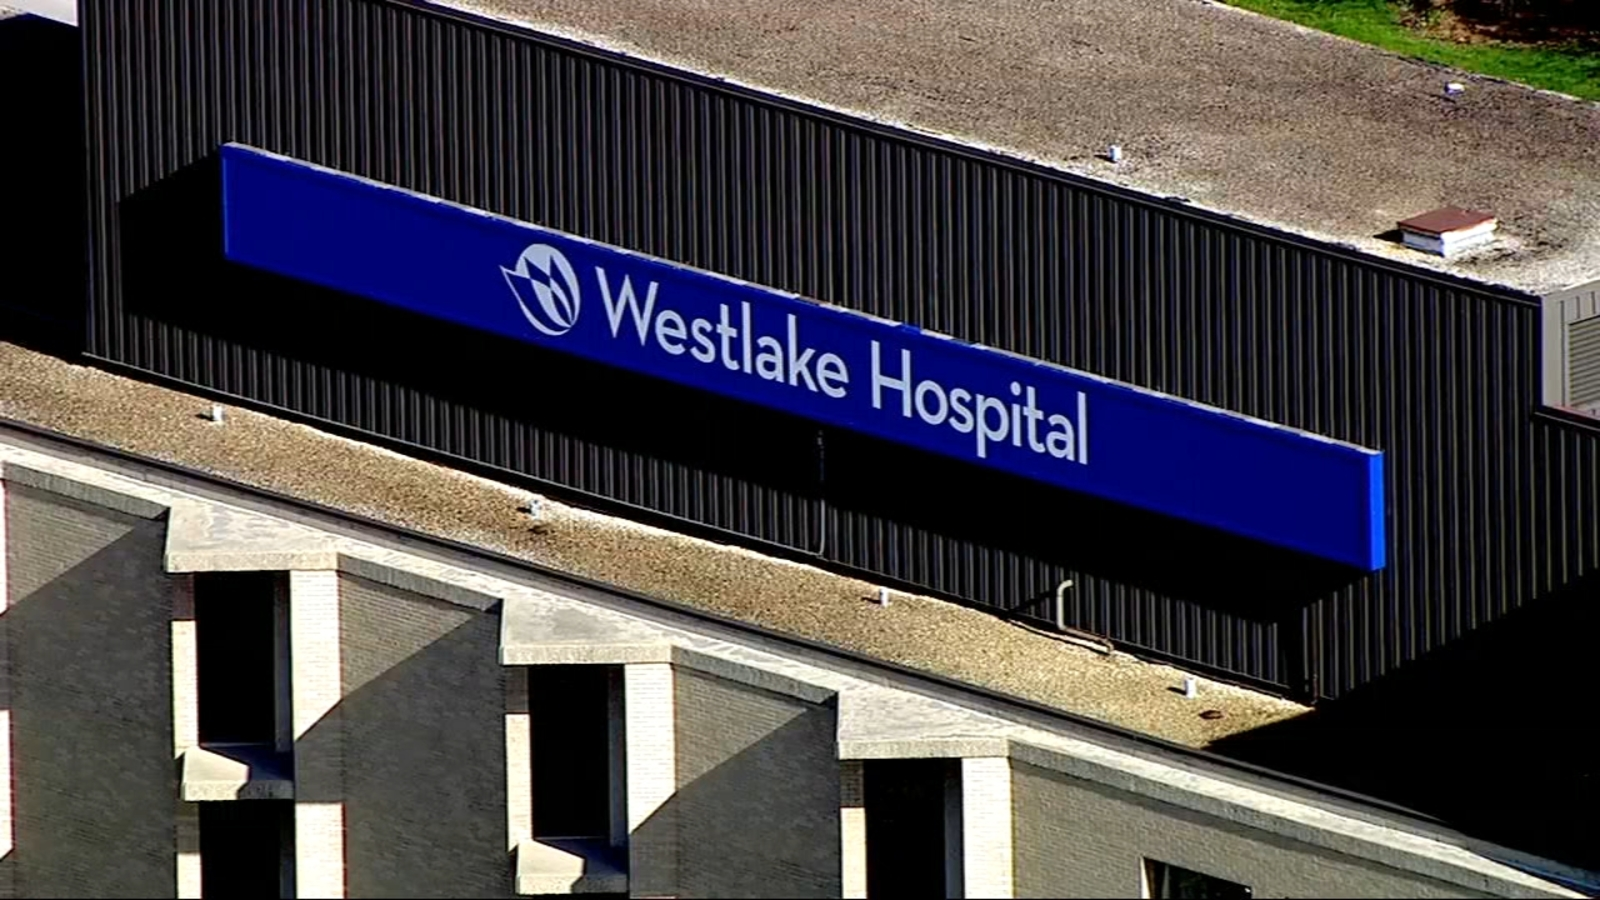 Fight continues to keep Westlake Hospital open despite owners efforts to close by end of day